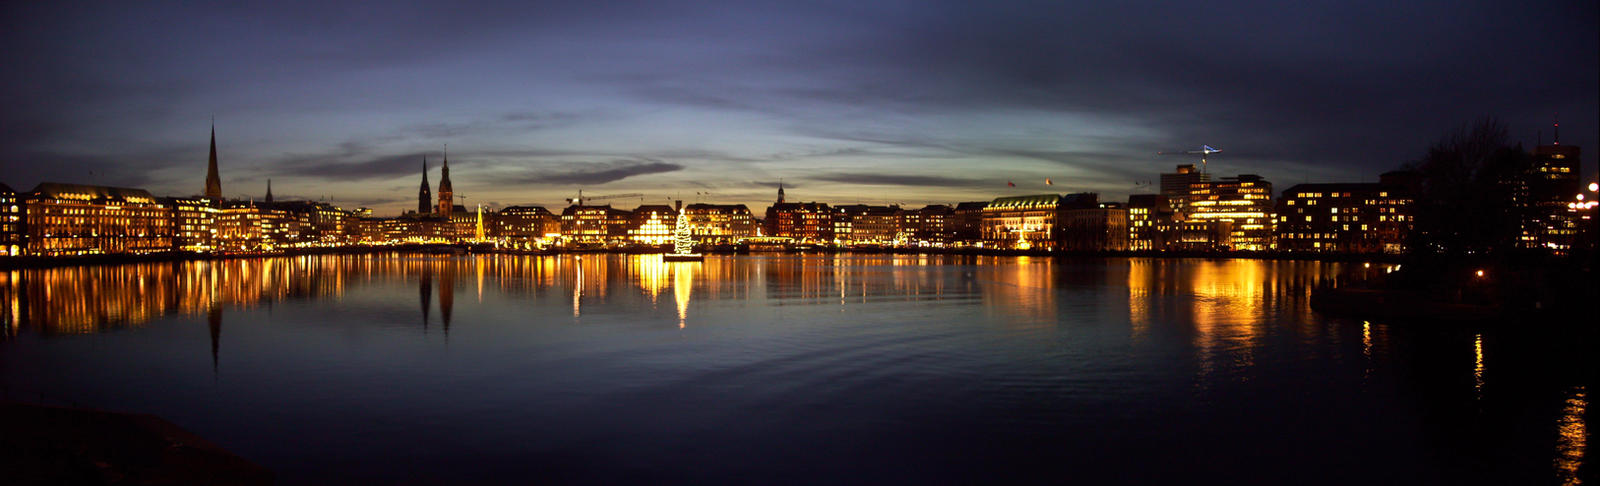 hamburg alster panorama night by bull04 on deviantart. Black Bedroom Furniture Sets. Home Design Ideas